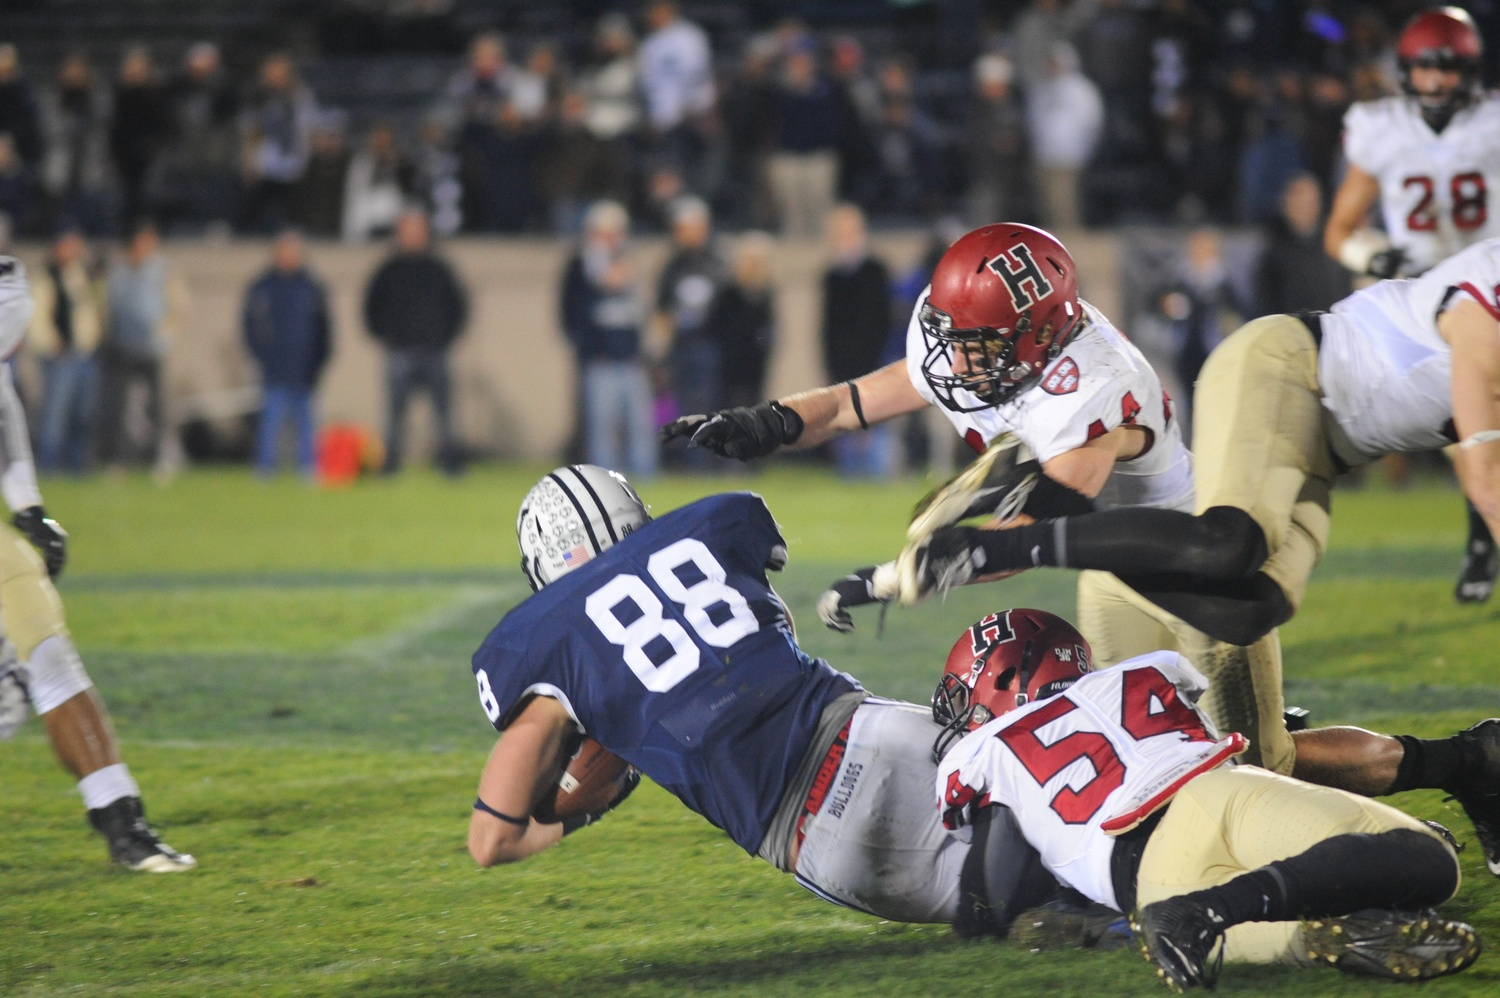 The Crimson defense held Yale scoreless for 42 minutes after its opening touchdown drive.